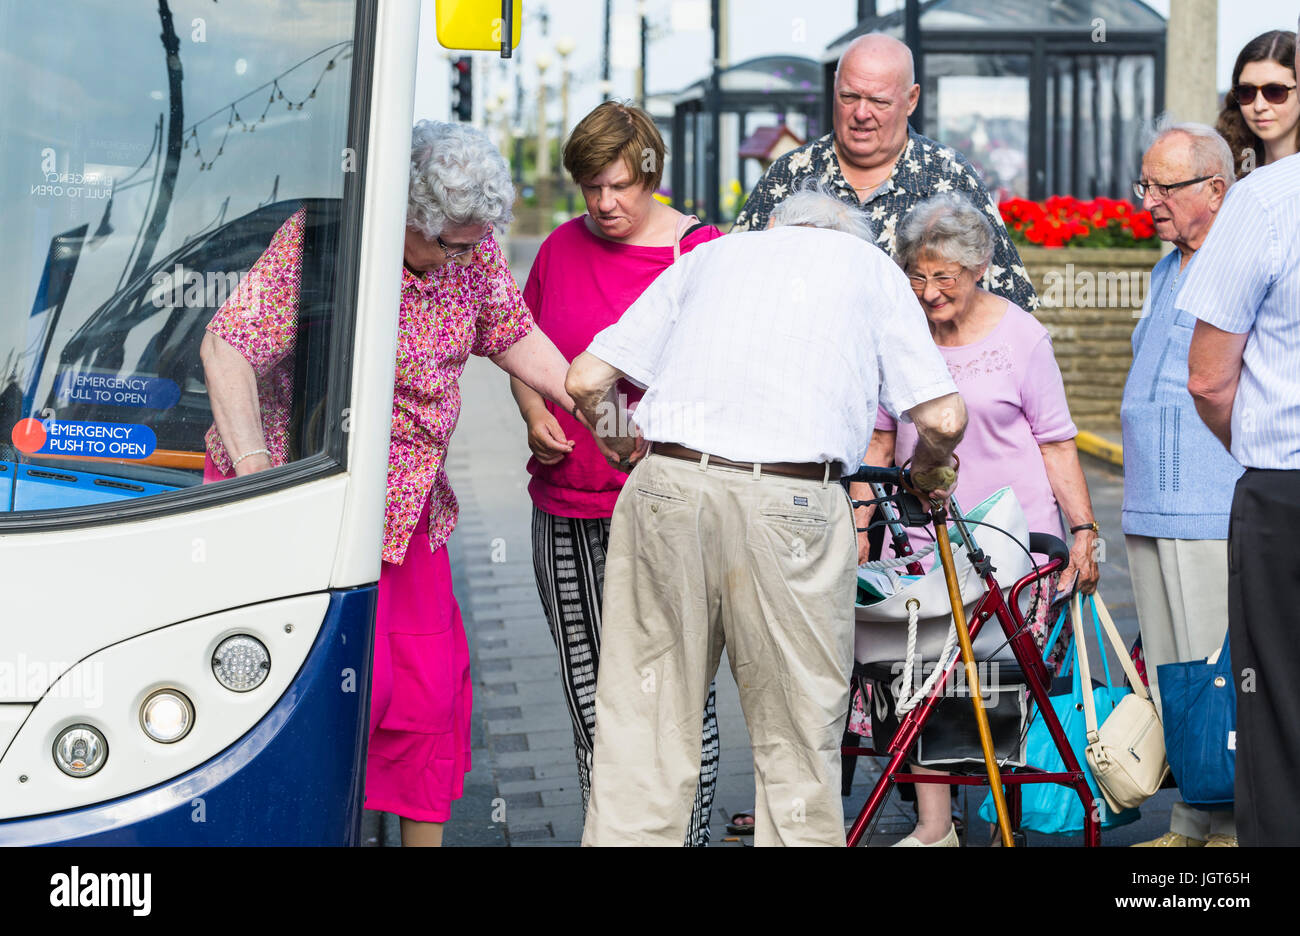 Elderly man helping an elderly woman getting off a bus. Helping the aged. Assisting concept. Giving assistance concept. - Stock Image